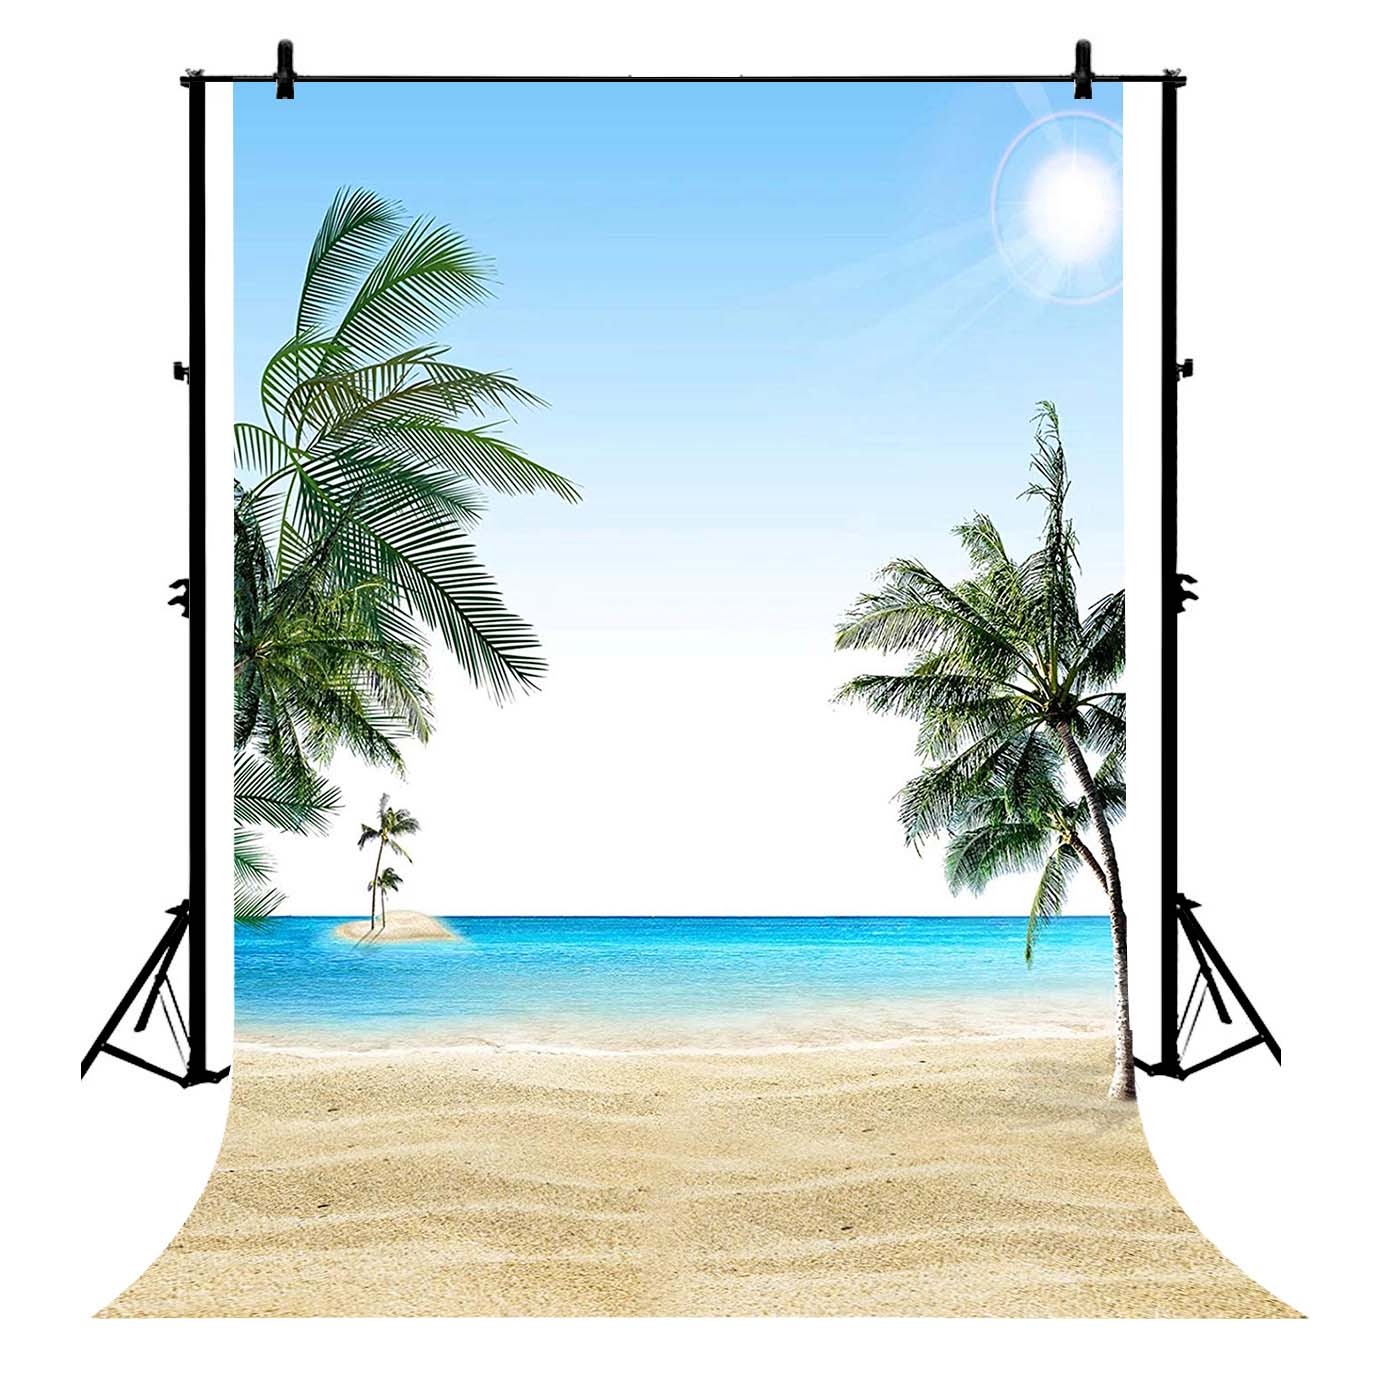 GCKG 7x5ft Beach Sea Island Coconut Trees Summer Polyester Photography Backdrop Photography Props Studio Photo Booth Props - image 4 of 4